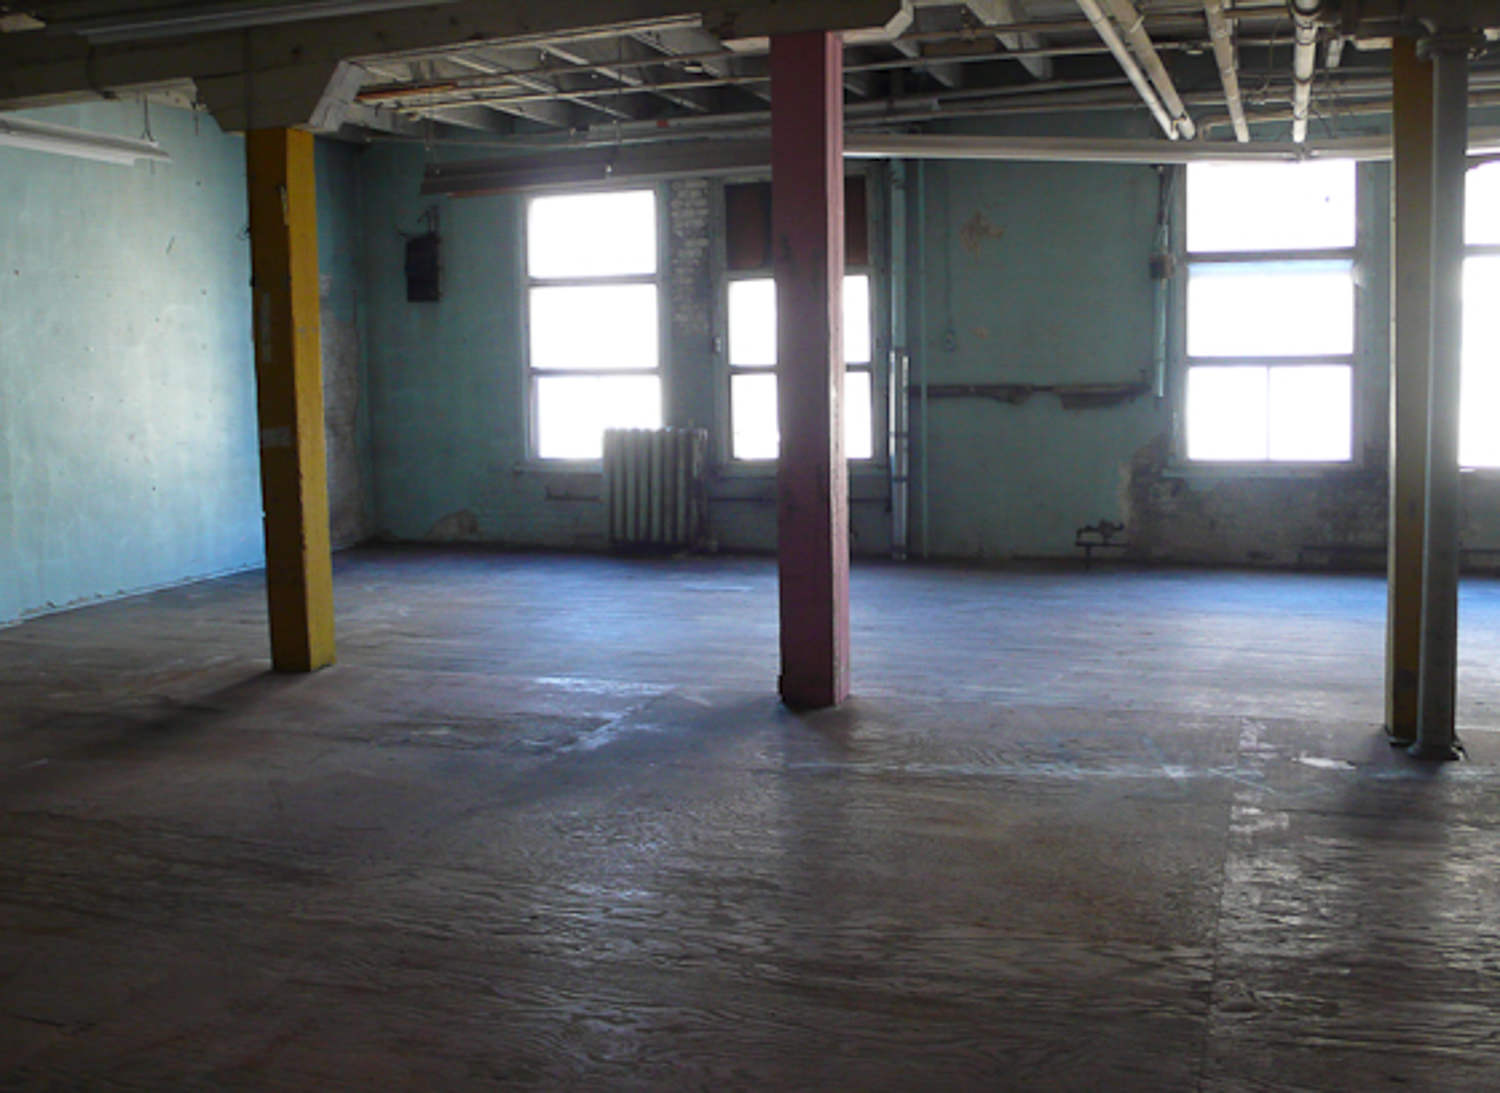 Pi's Studio - Location before.  Pi's Studio was built into an existing unfinished warehouse space